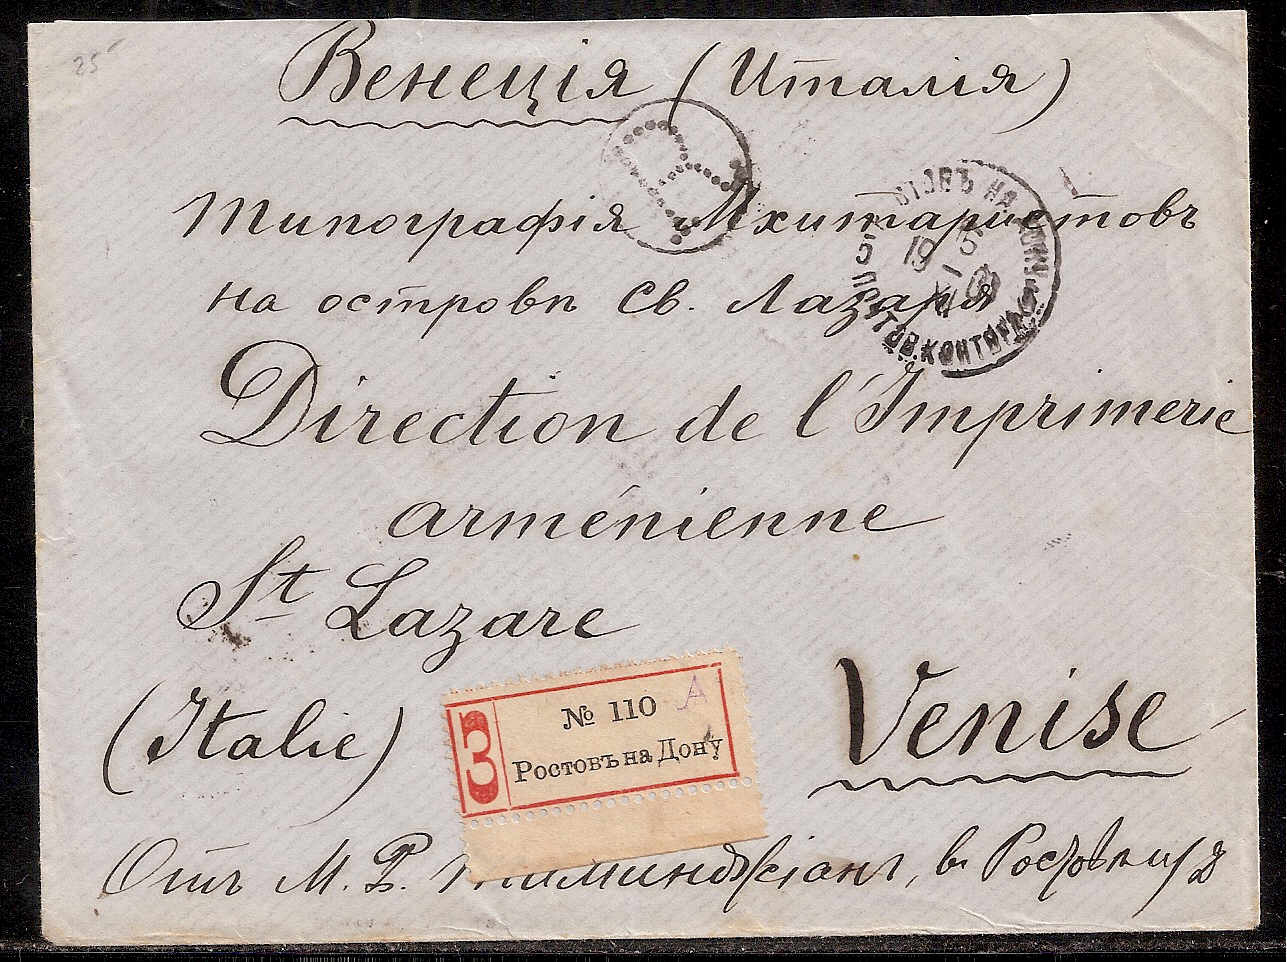 Russia Postal History - 1857-1917 Issue 1889 (Horizontally laid) Scott 41,49-50